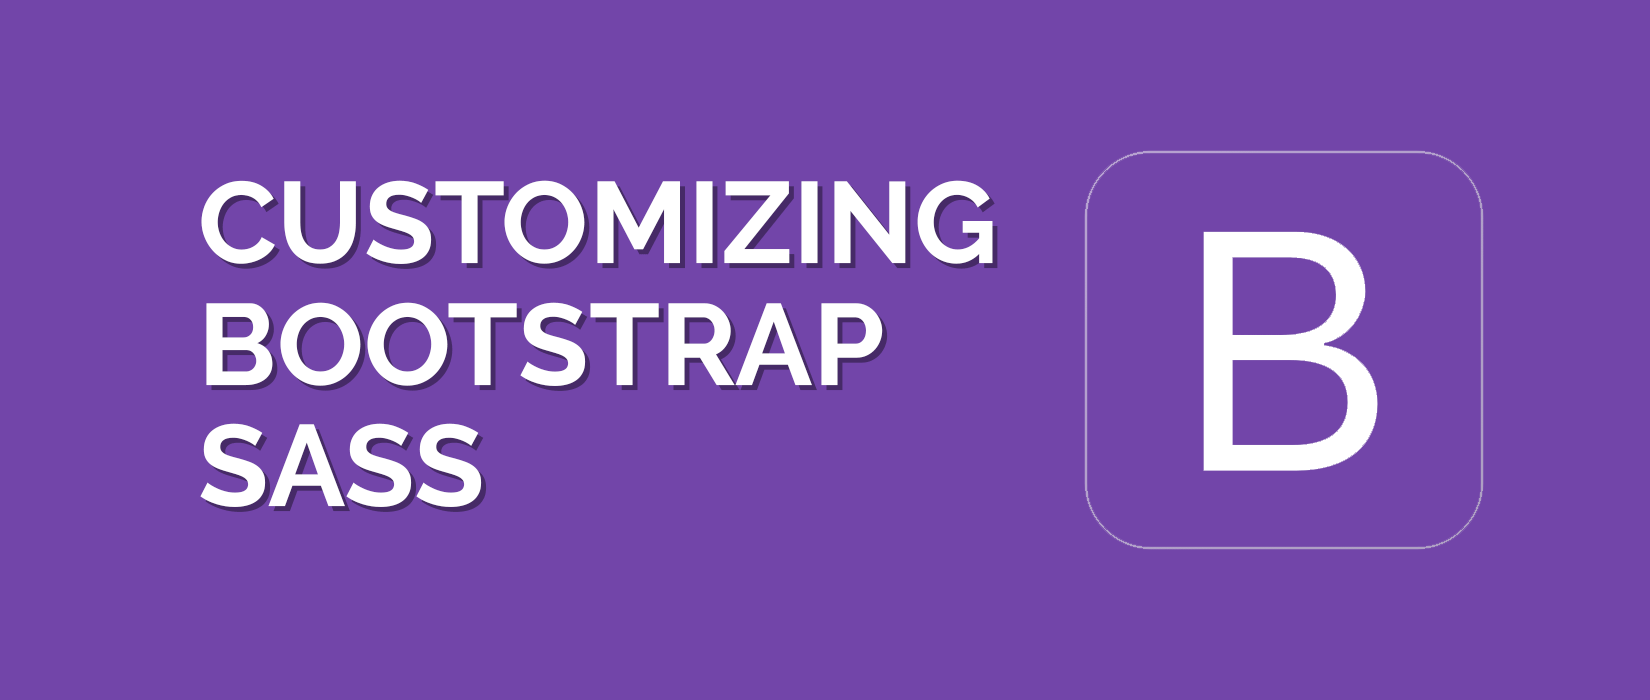 How to Customize Bootstrap 4 with Sass